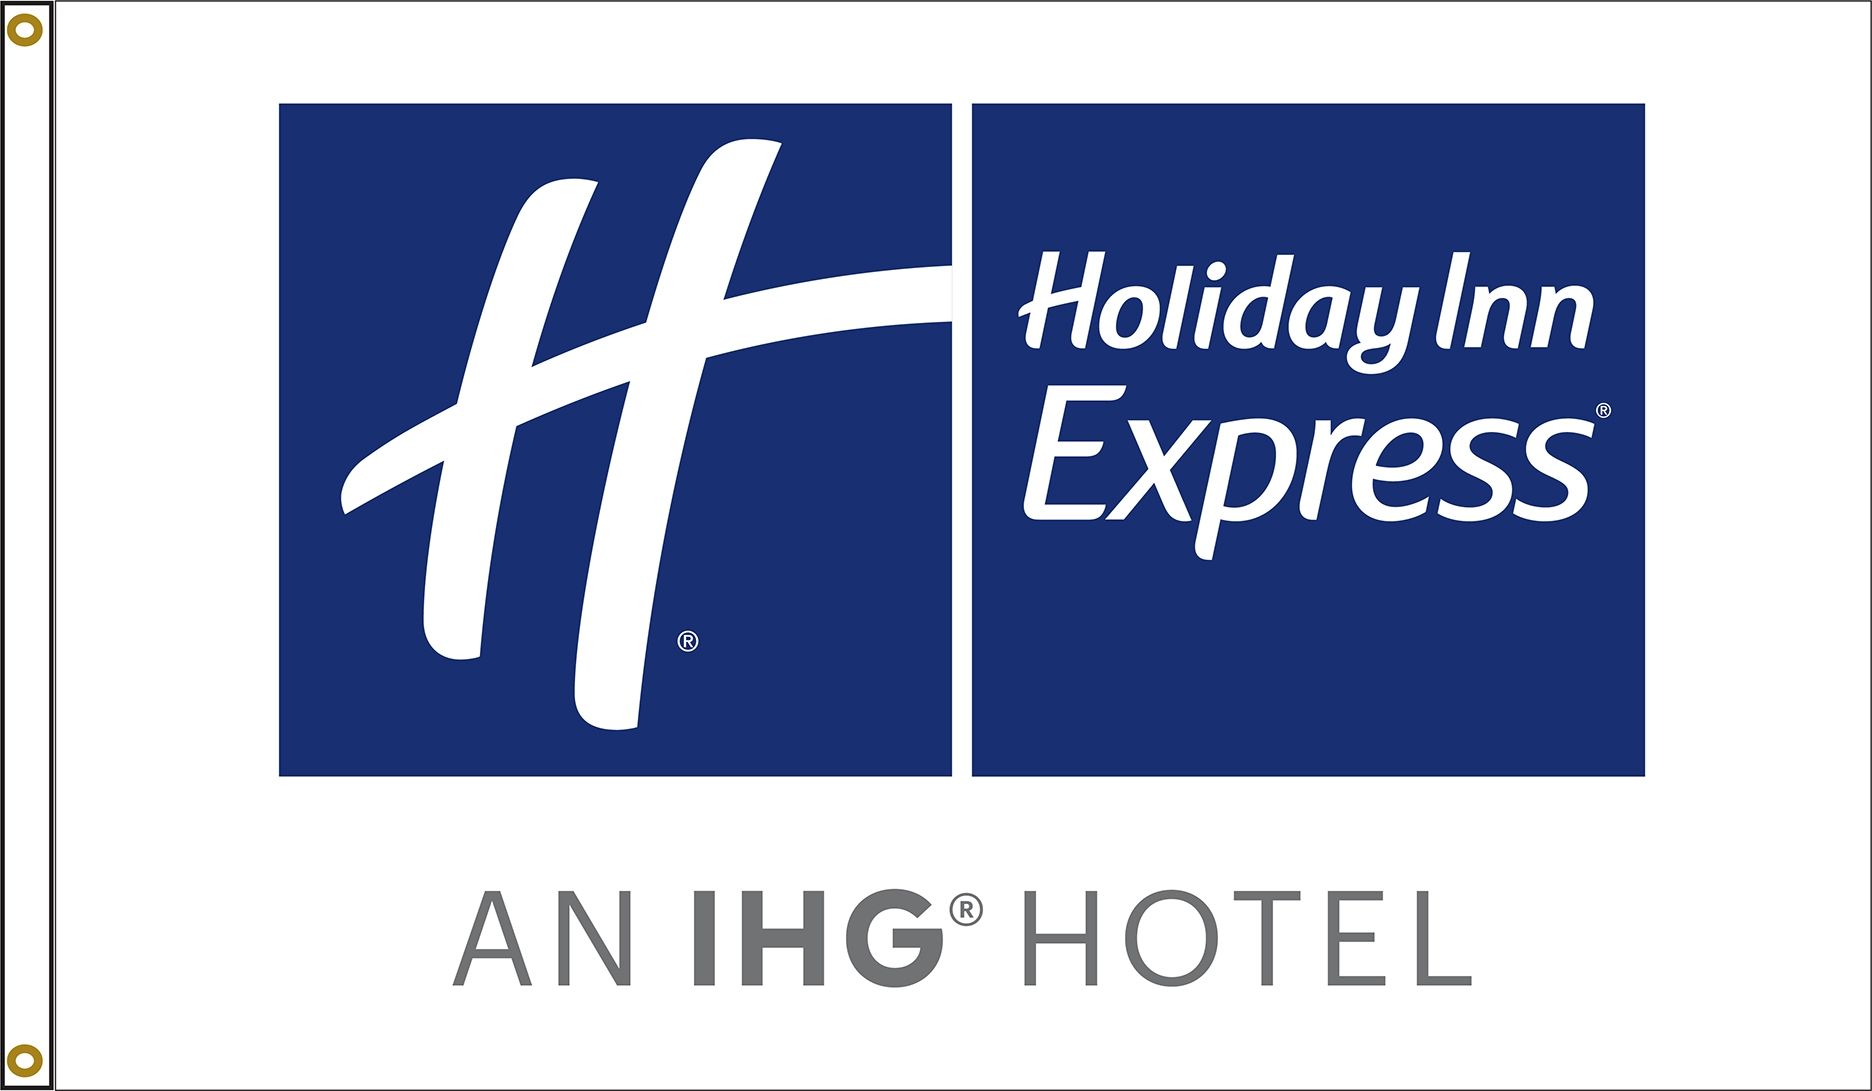 Holiday Inn Express Flags